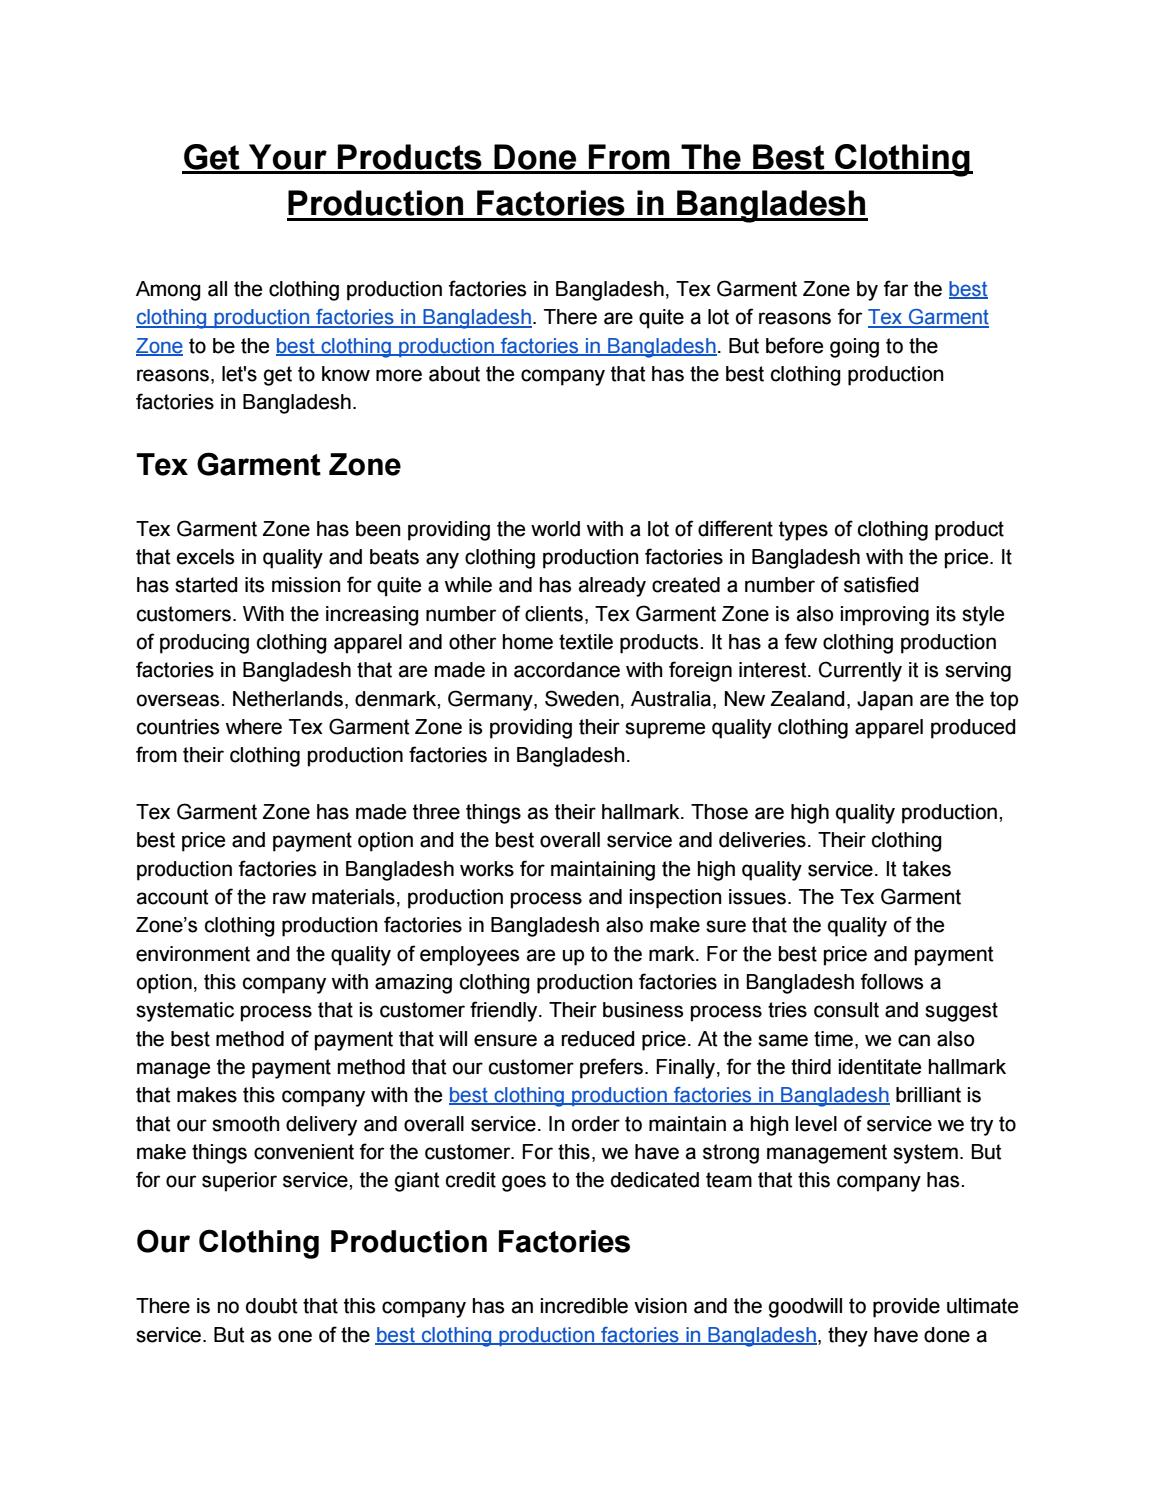 Get Your Products Done From The Best Clothing Production Factories